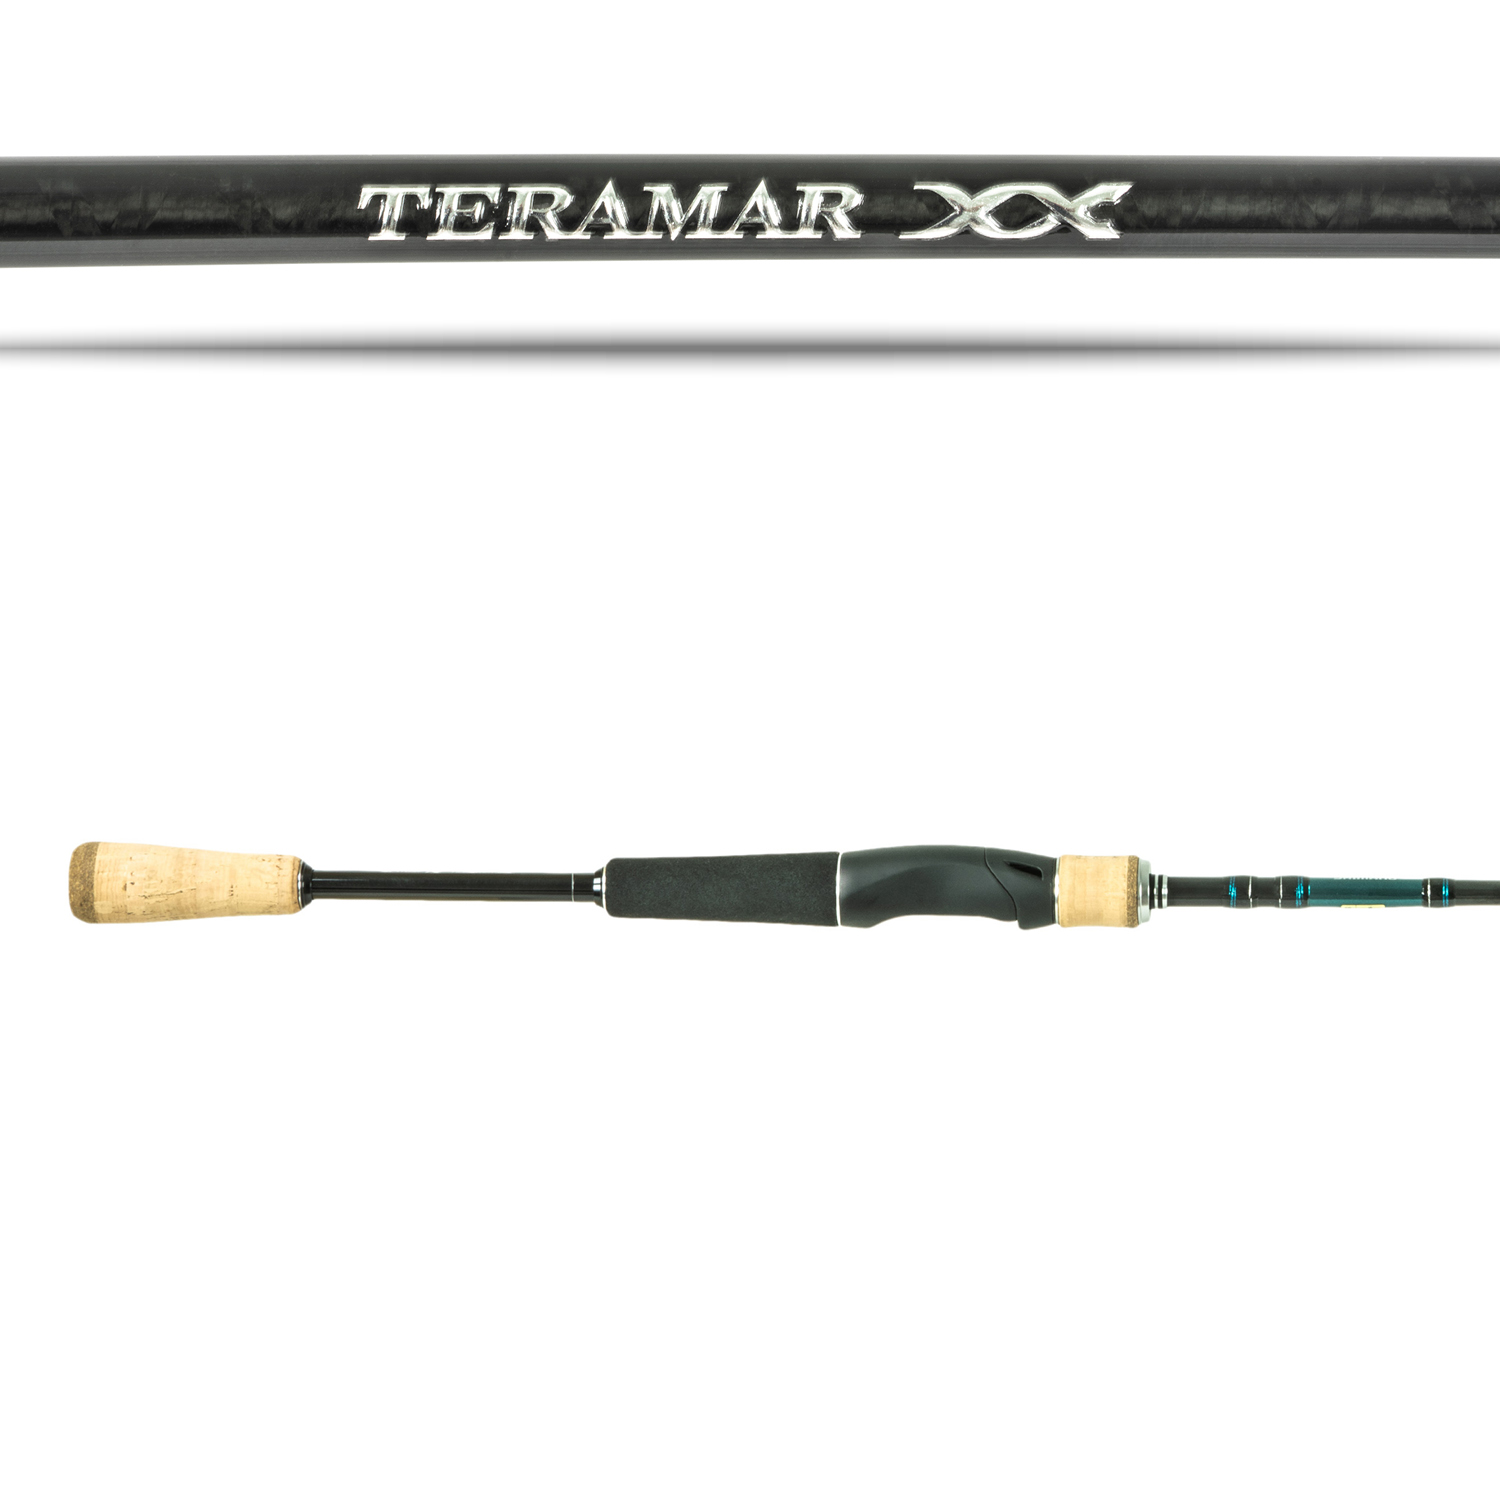 TERAMAR-XX-SW-SPINNING-A-primary_01_detail